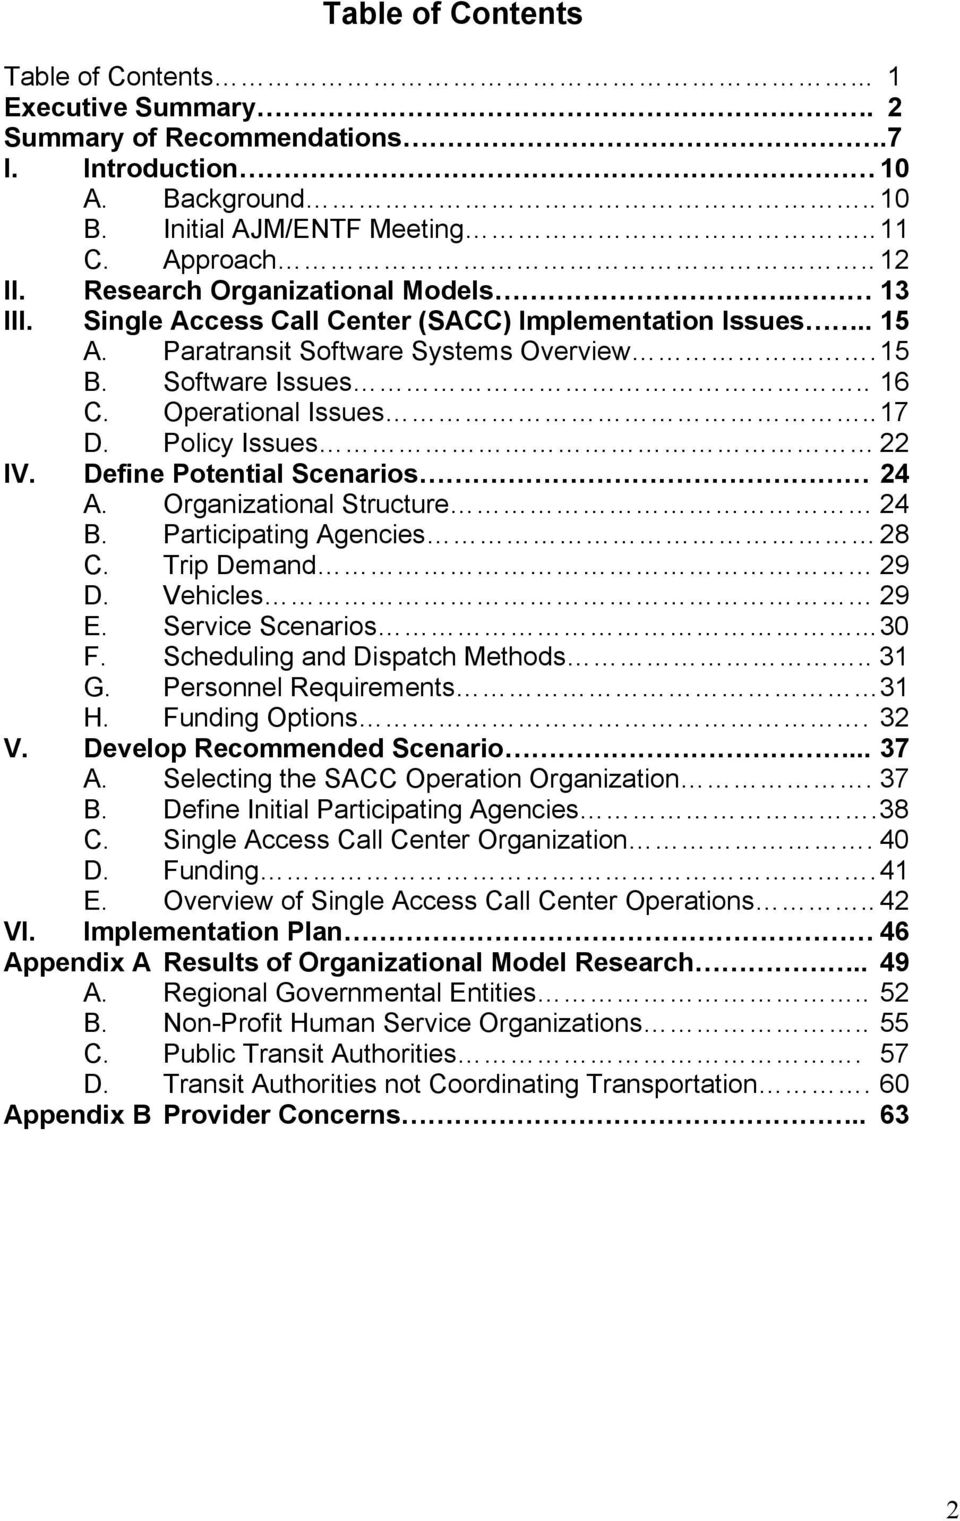 Policy Issues 22 IV. Define Potential Scenarios 24 A. Organizational Structure 24 B. Participating Agencies 28 C. Trip Demand 29 D. Vehicles 29 E. Service Scenarios... 30 F.